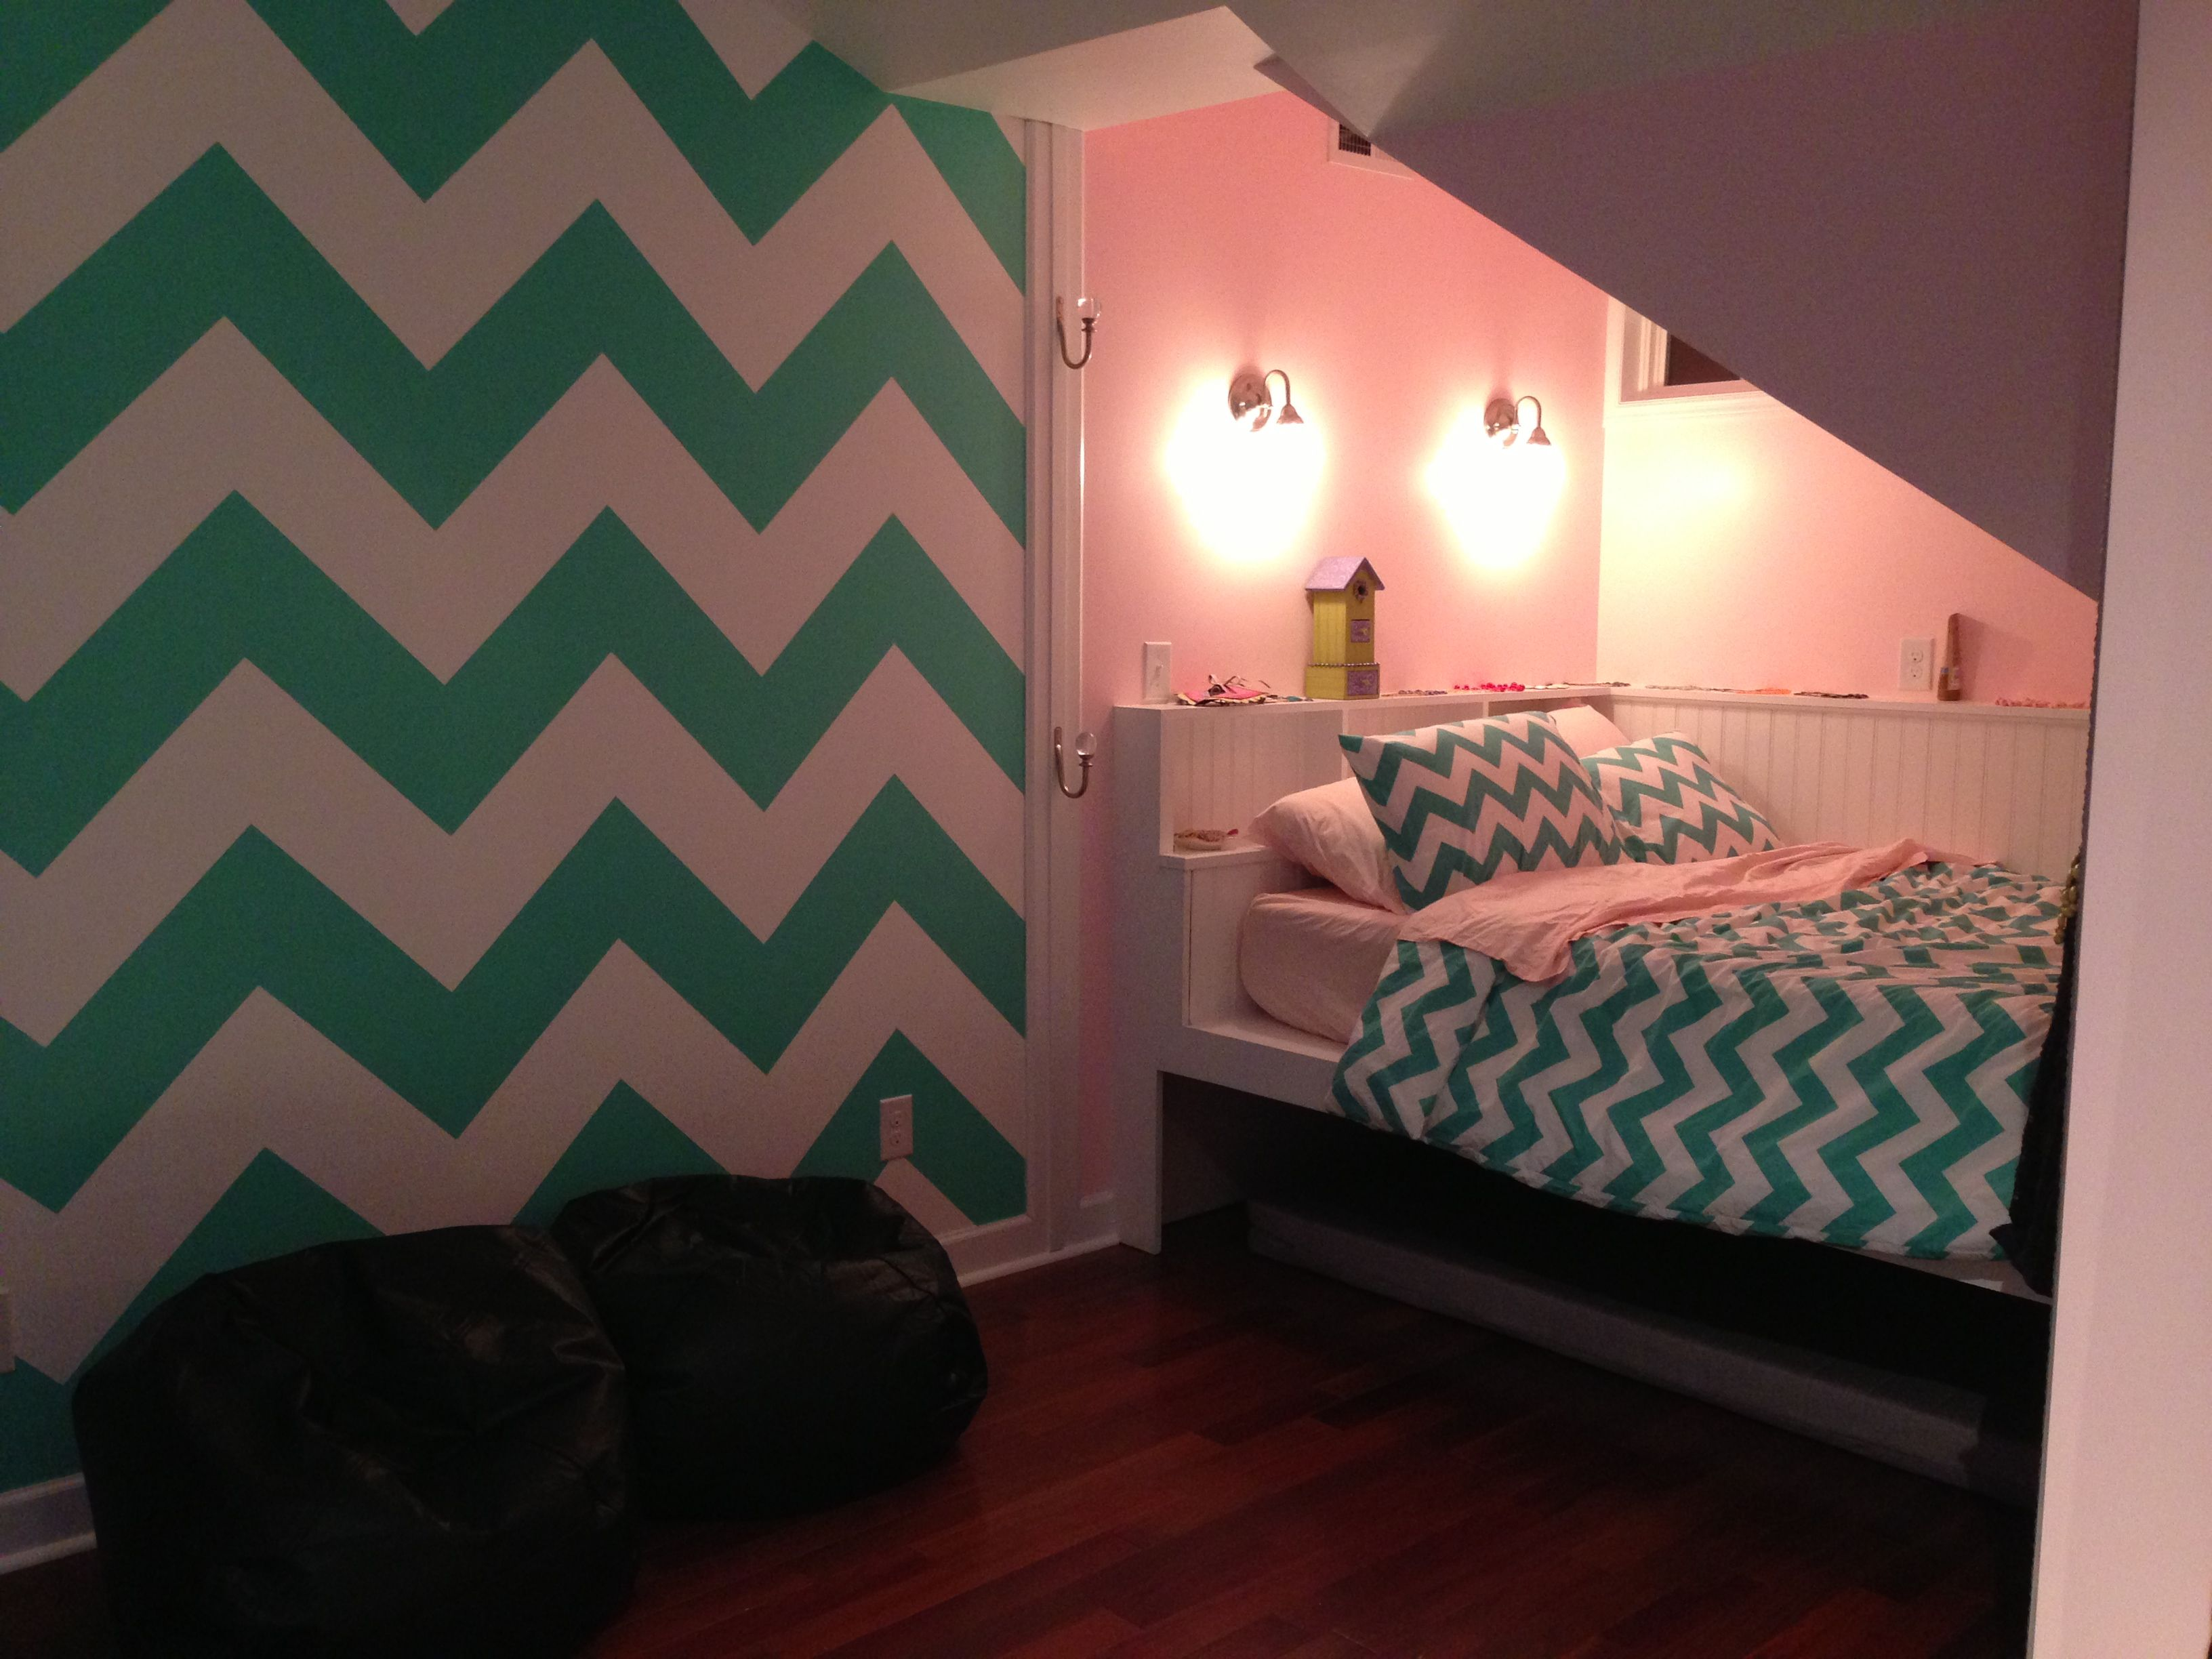 Bedroom Wall Paint Tumblr Chevron Painted Wall In Teen Room Girl Room Ideas